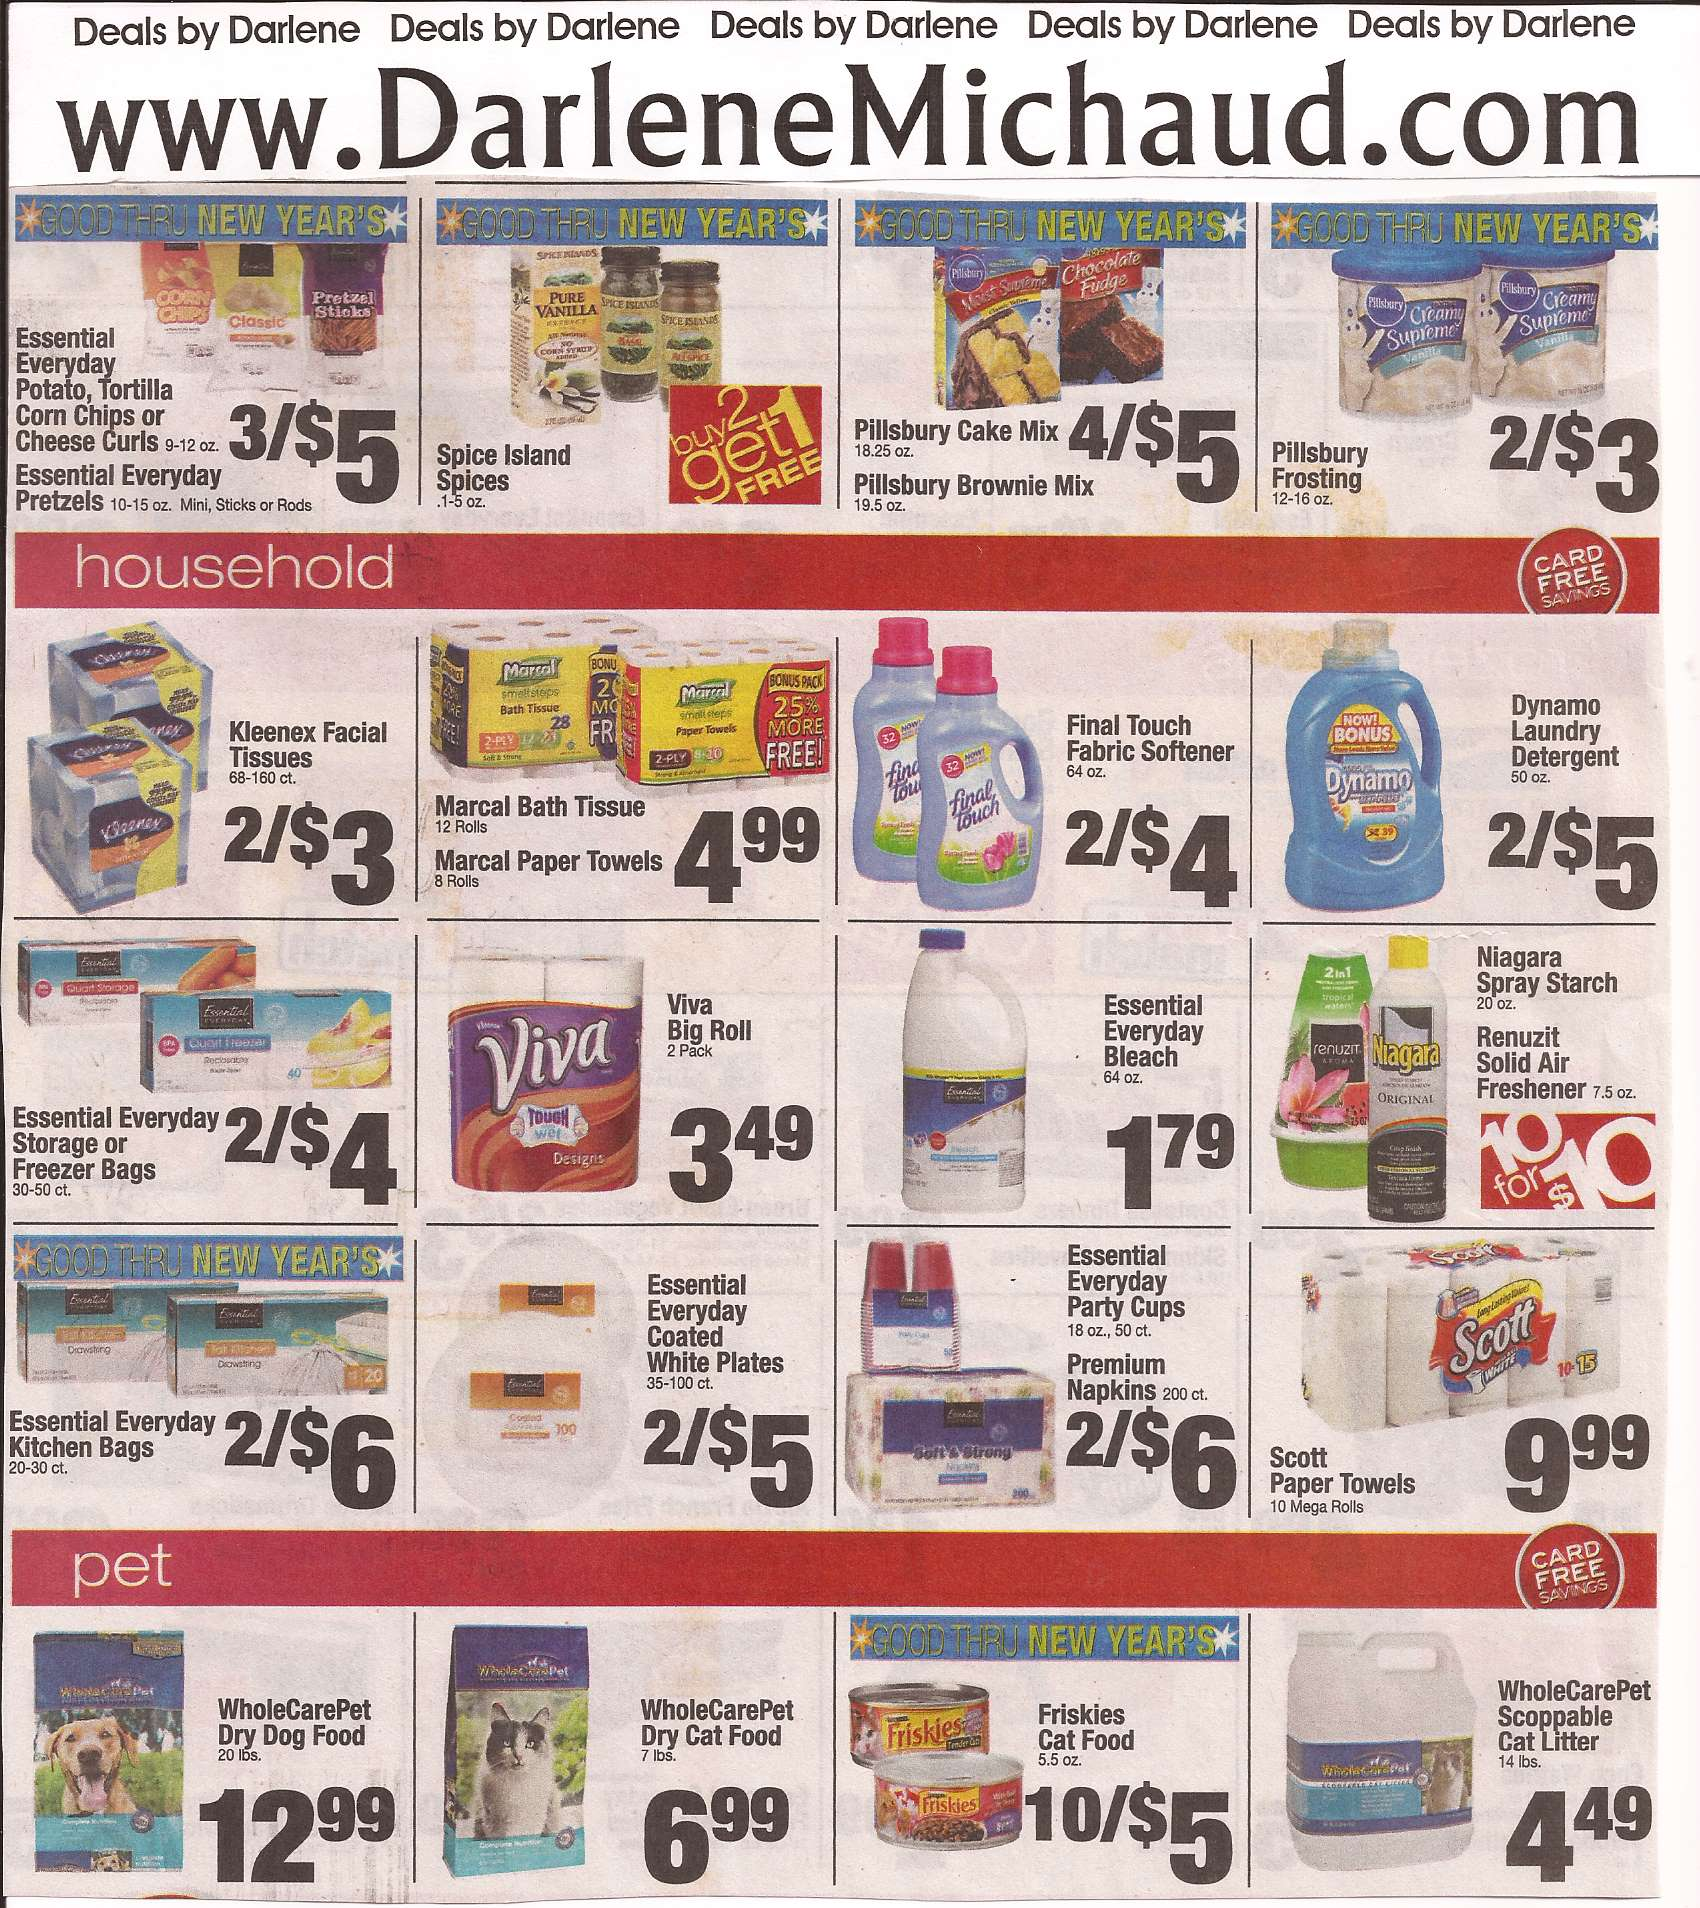 Find Latest Shaws Weekly ad flyer and shaws 3 Day Sale, Saving money with shaws ad for your favorite groceries and Shaws Bogo also check shaws Coupons & Deals offered by shaw's.